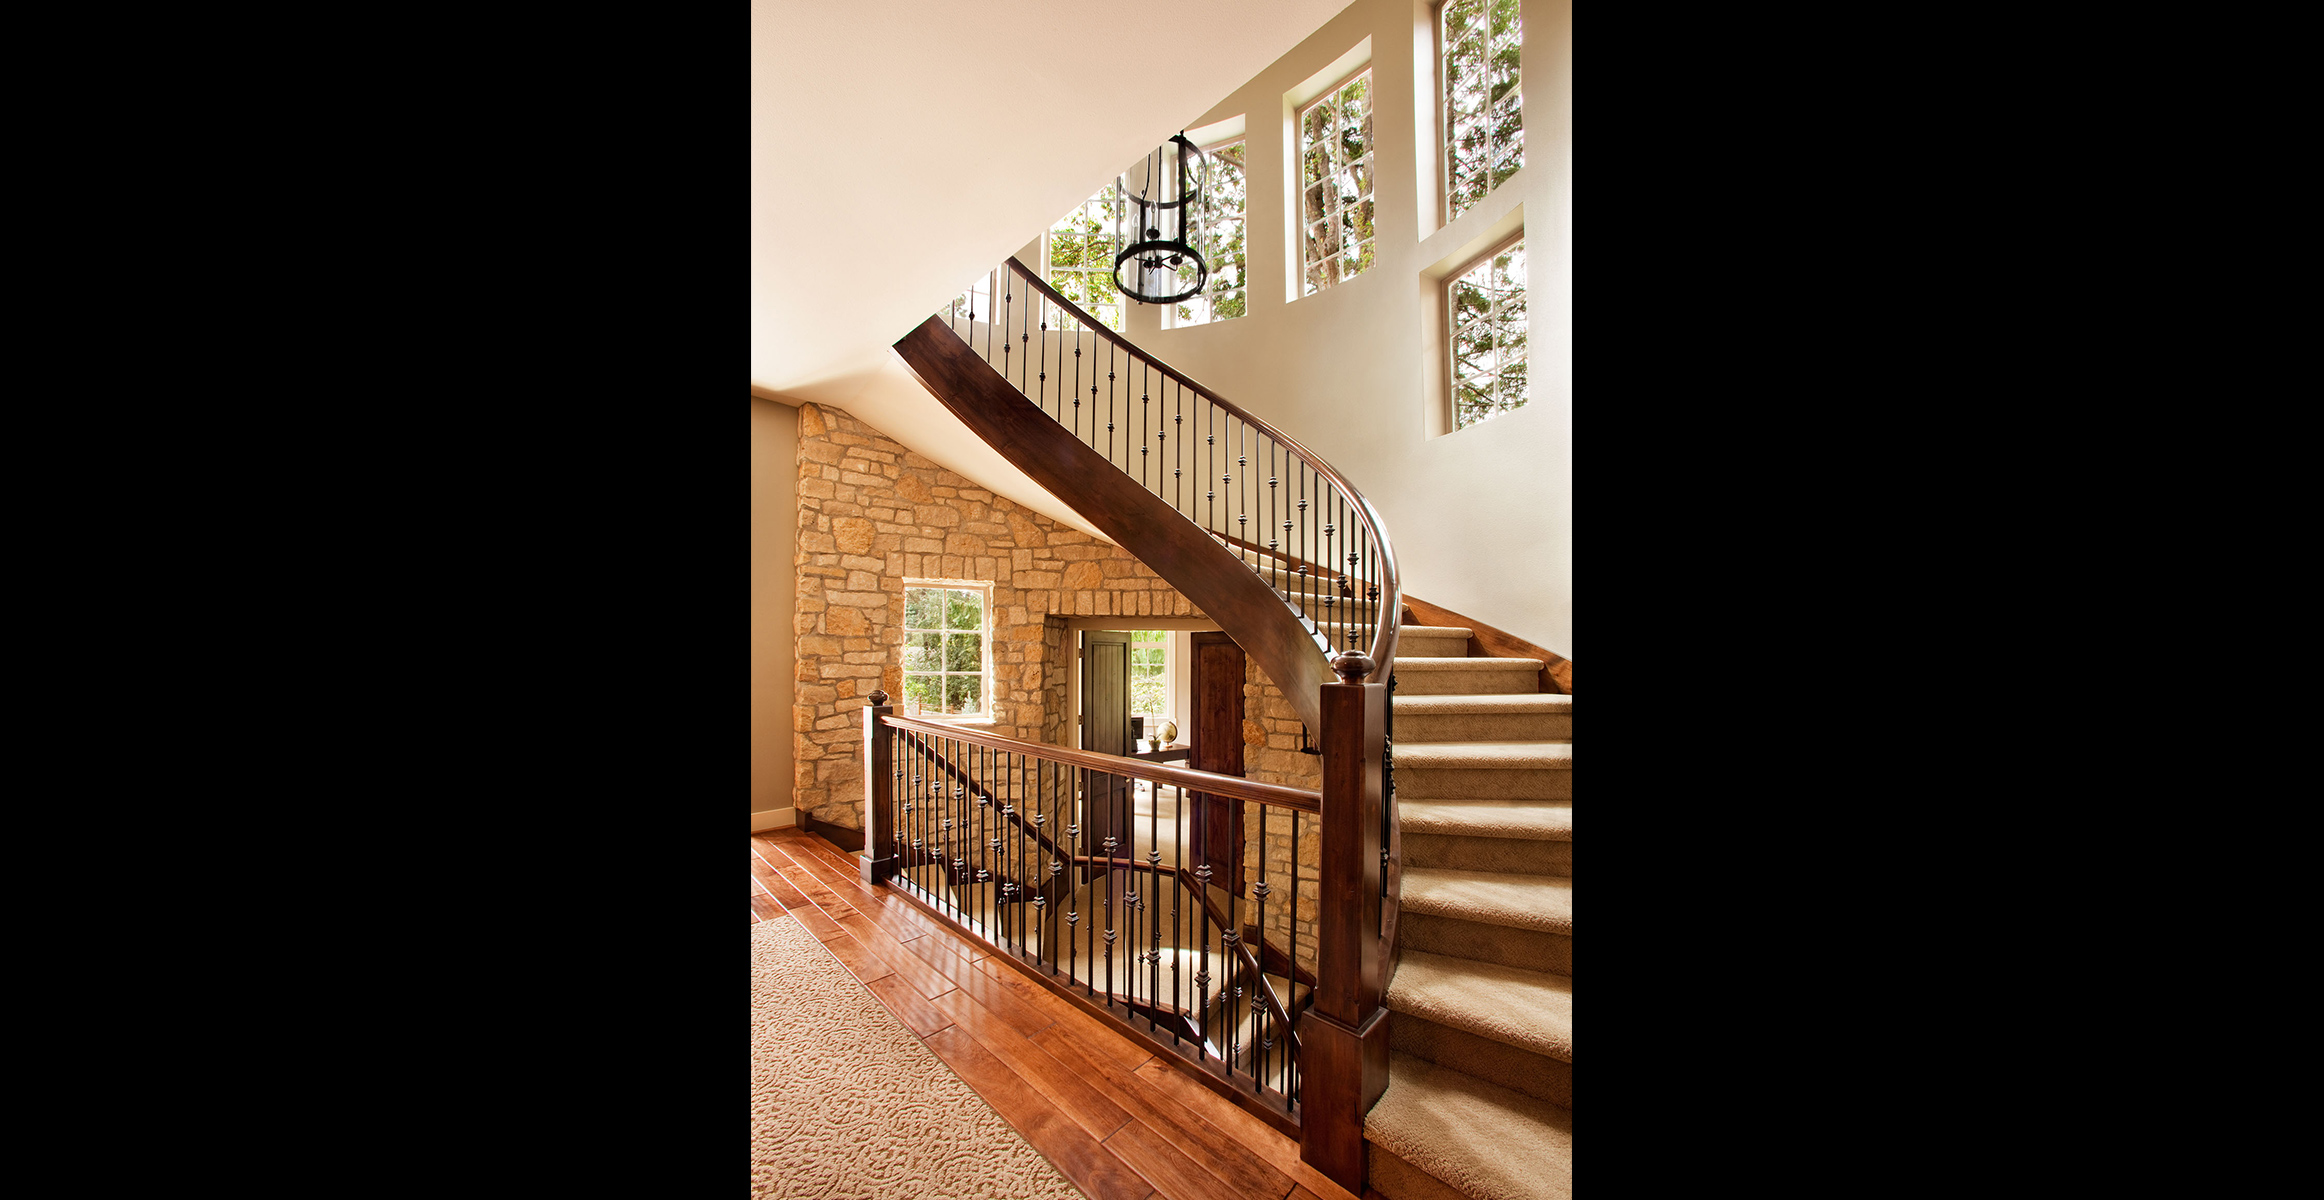 Handscraped floors and fieldstone highlight the entry into this home